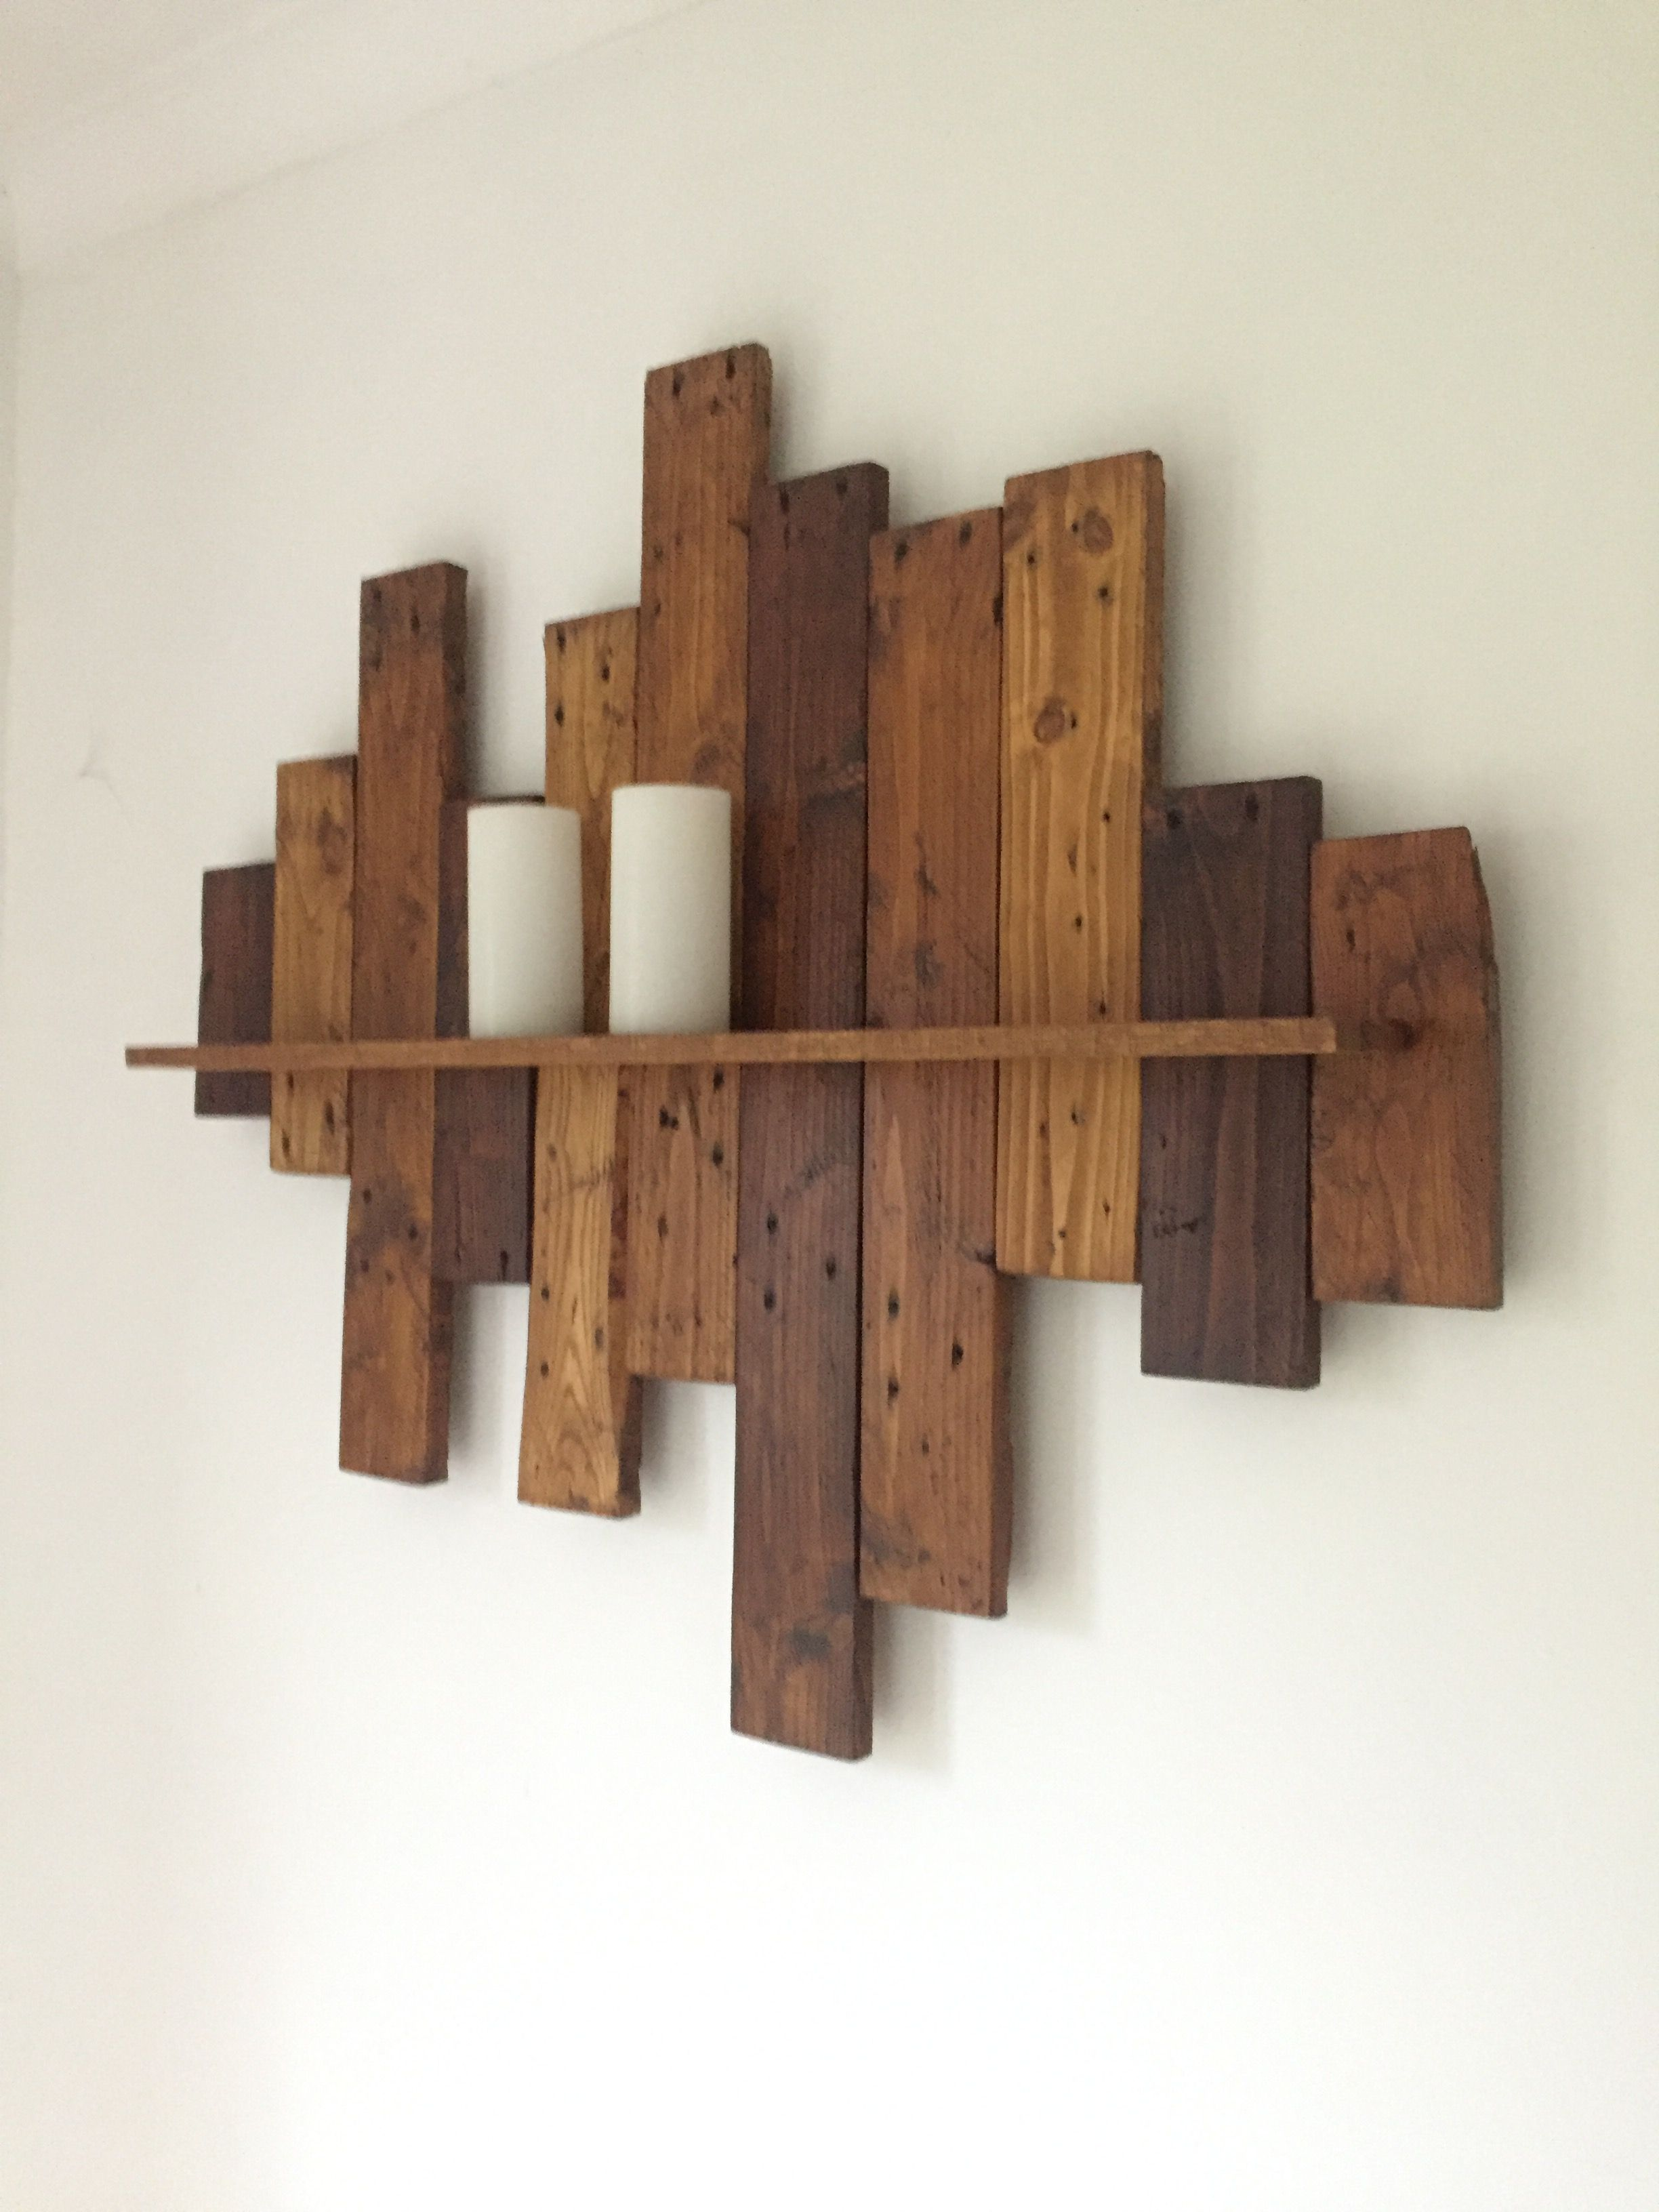 Pin De Sergio Pereyra En Pallet Wood Projects Muebles De Pales